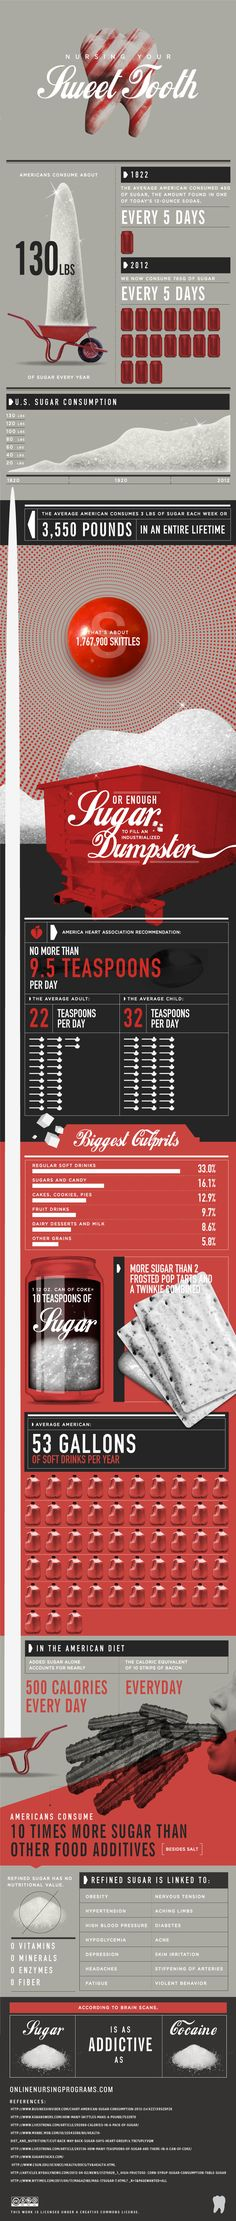 American Sugar Consumption #Infographic